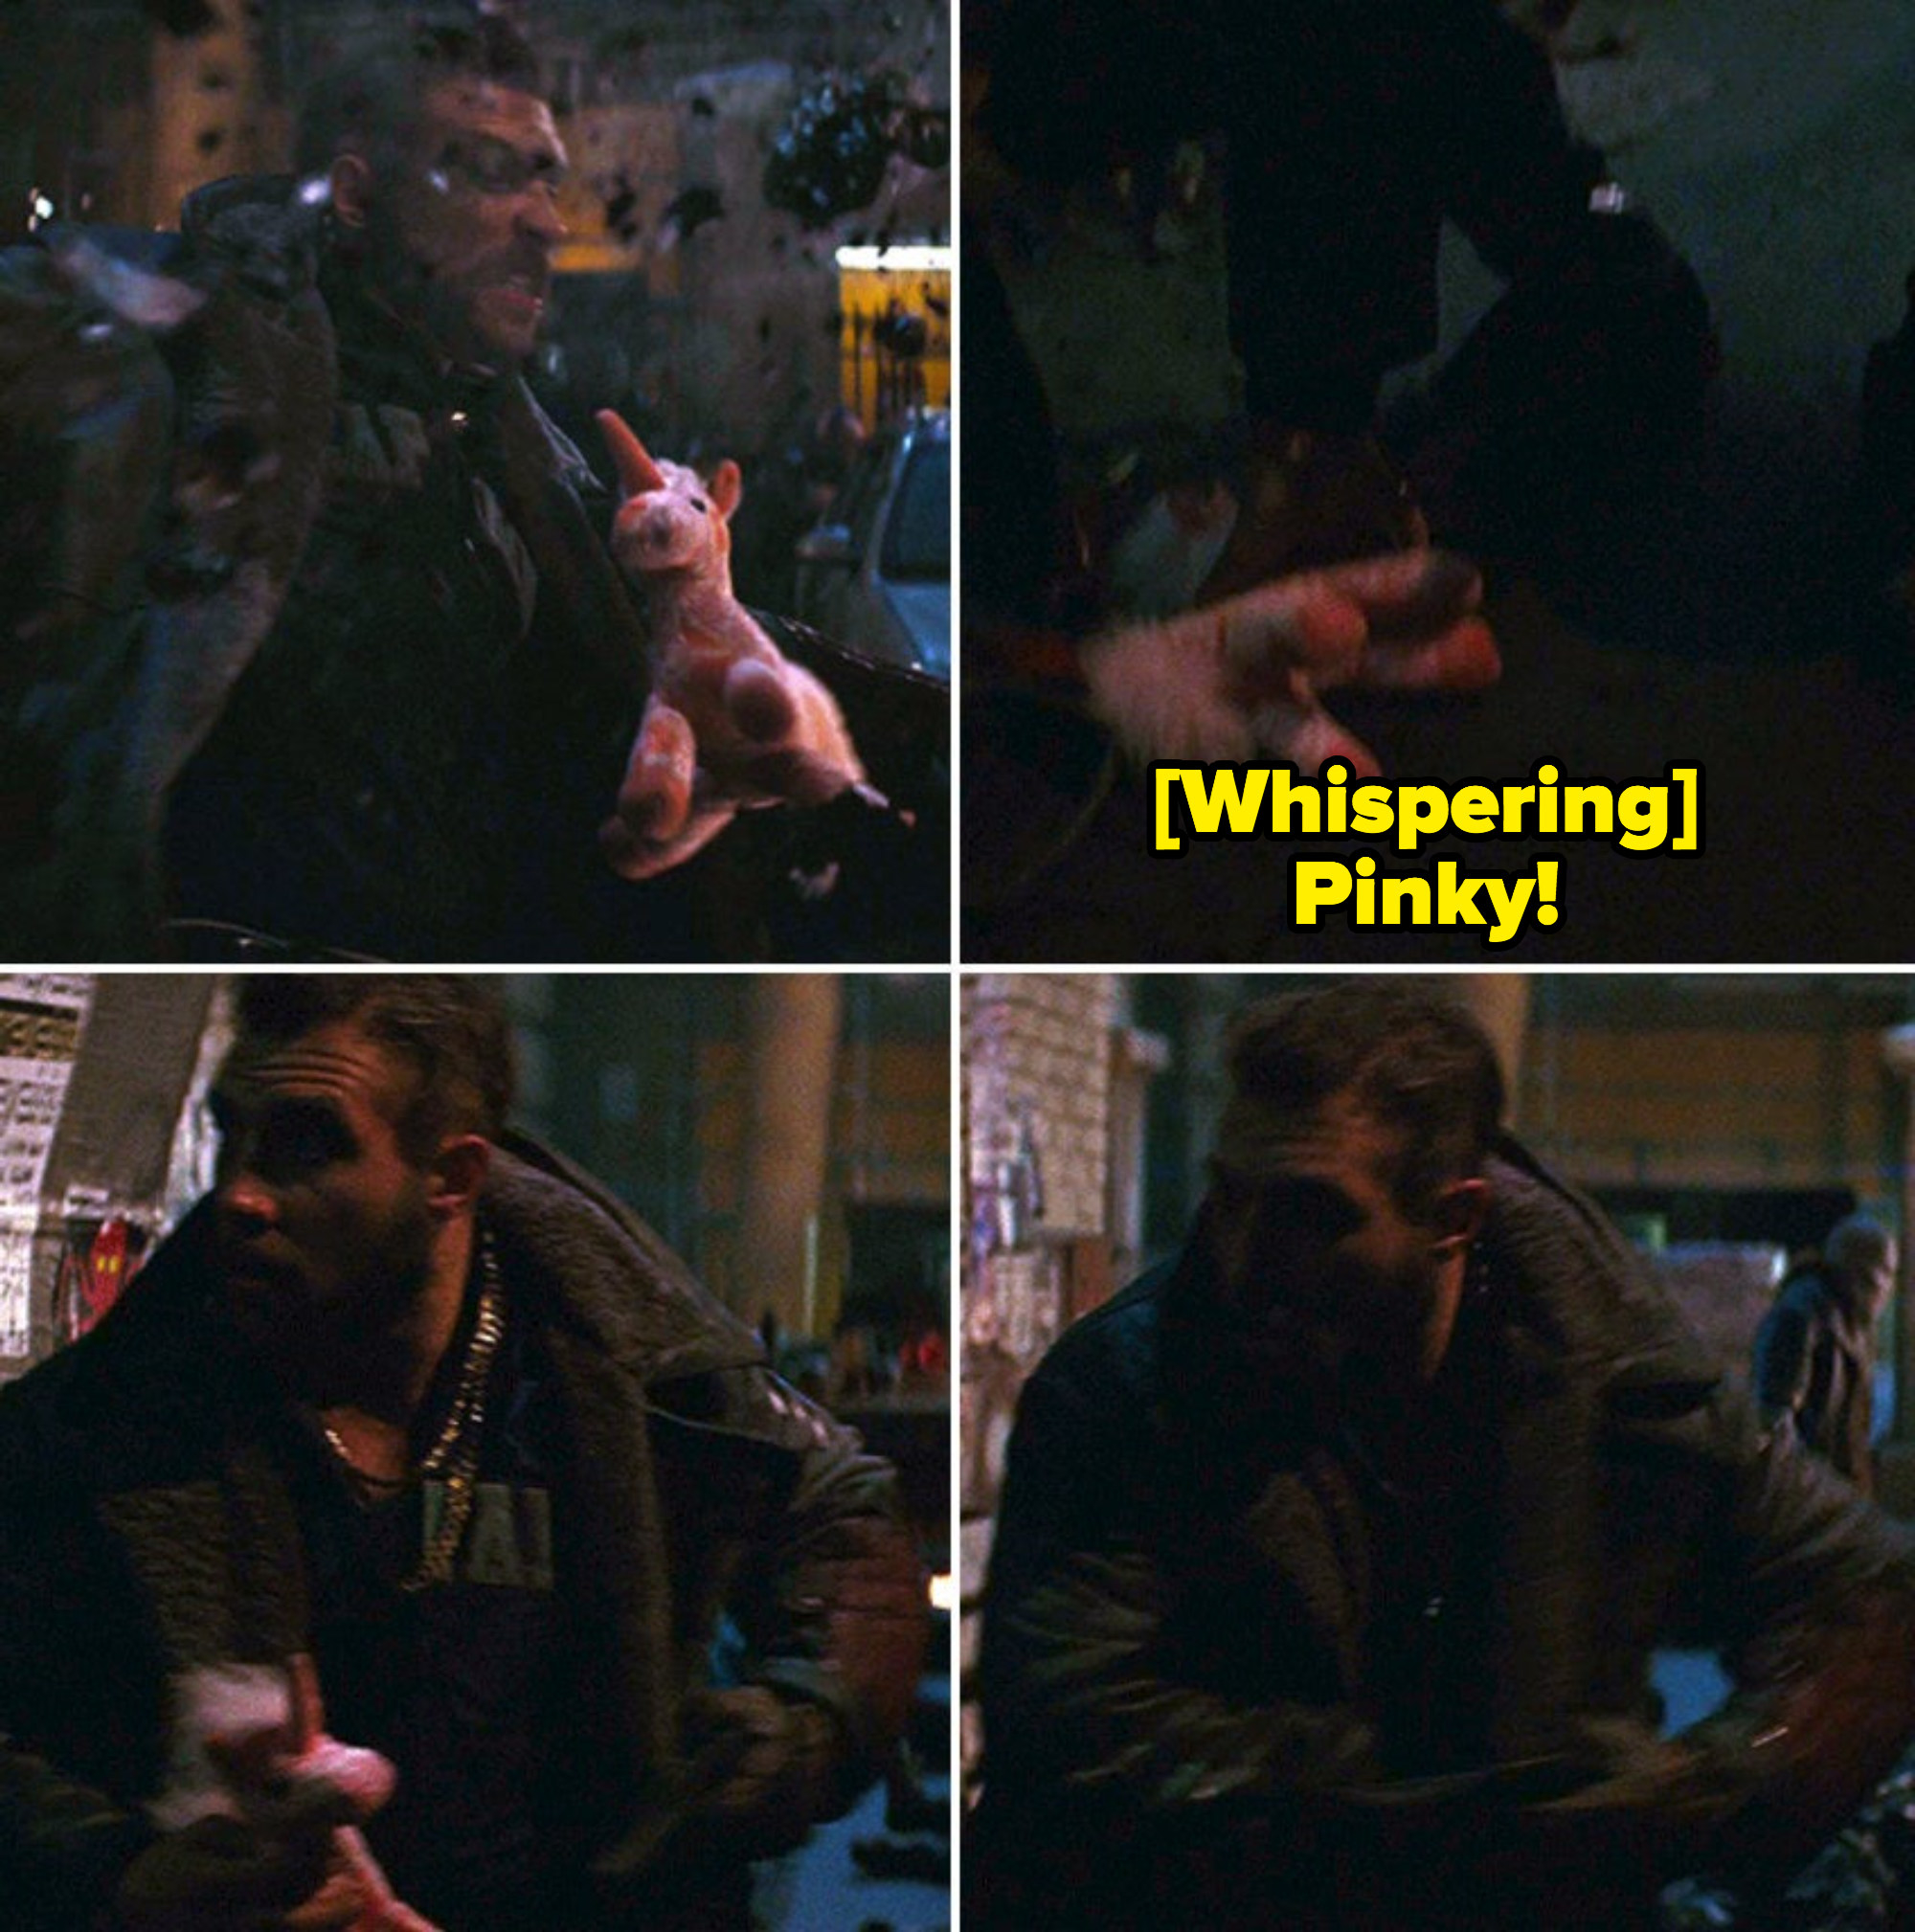 Captain Boomerang dropping his stuffed animal, Pinky, after punching someone in a street fight